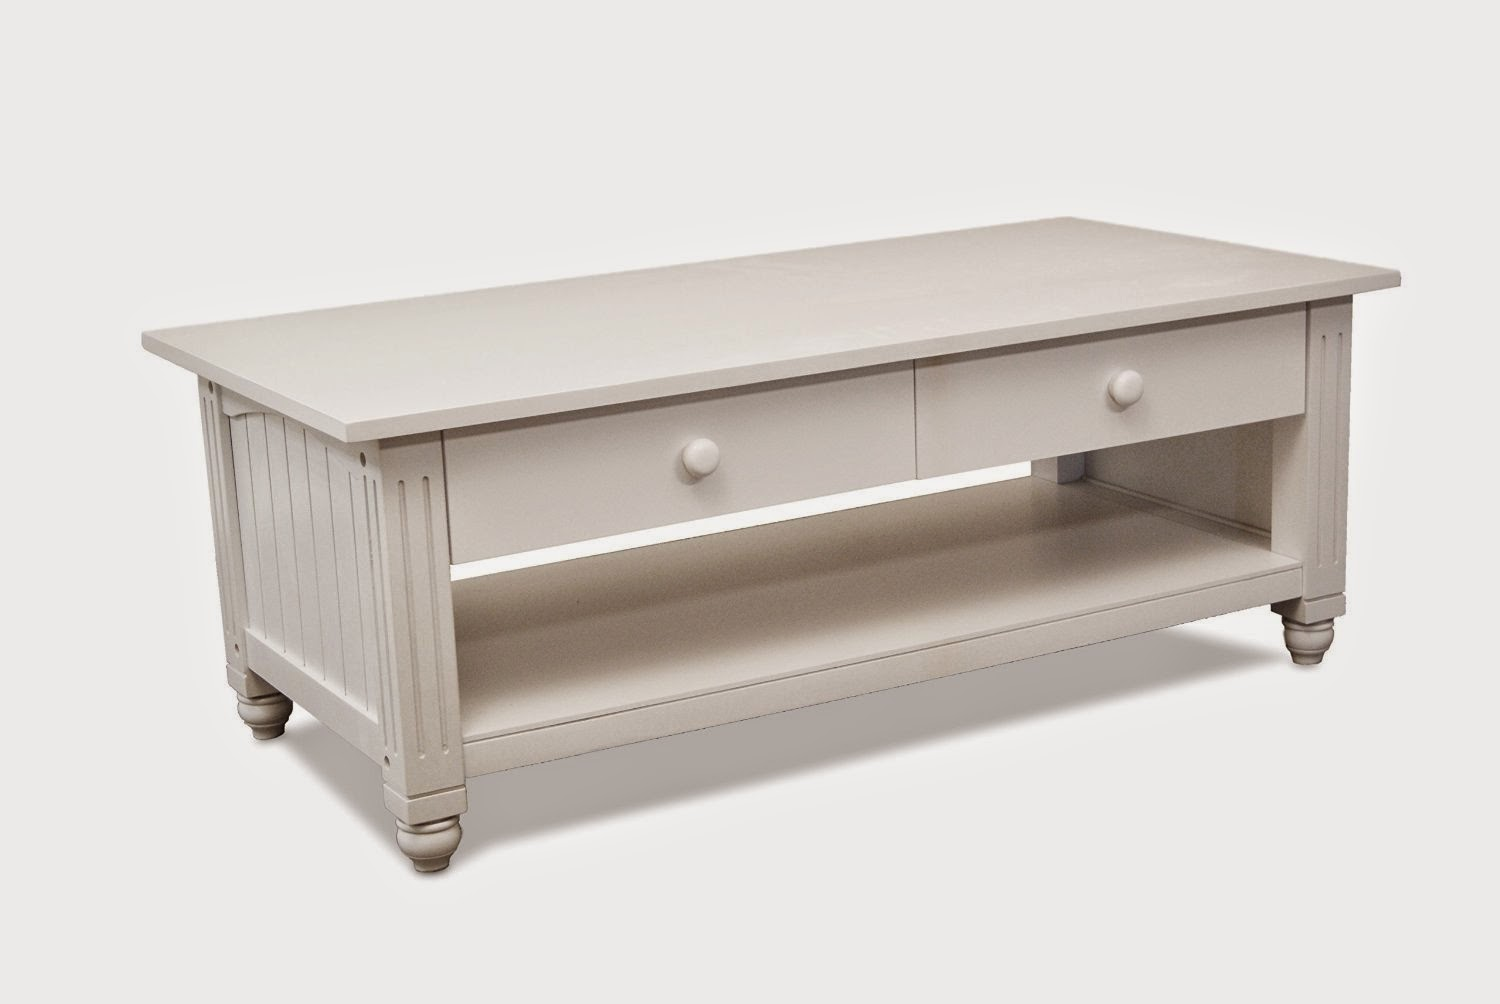 Lifestyle Solutions antique white coffee table